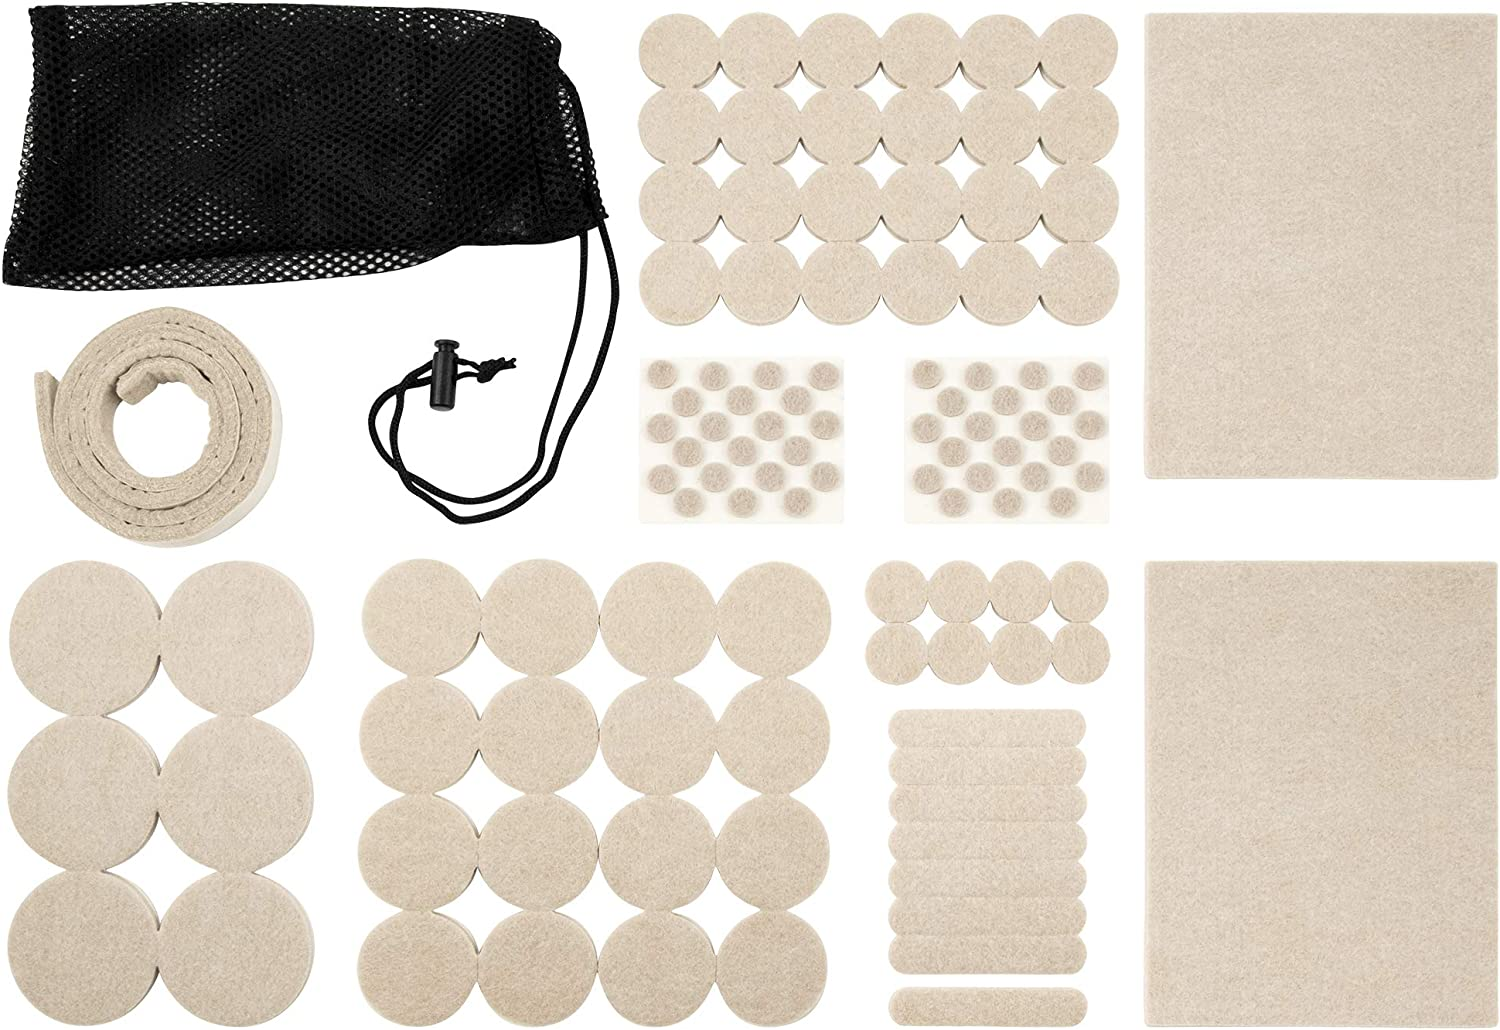 SoftTouch Self-Stick Furniture Felt Pads 108 Piece Value Pack